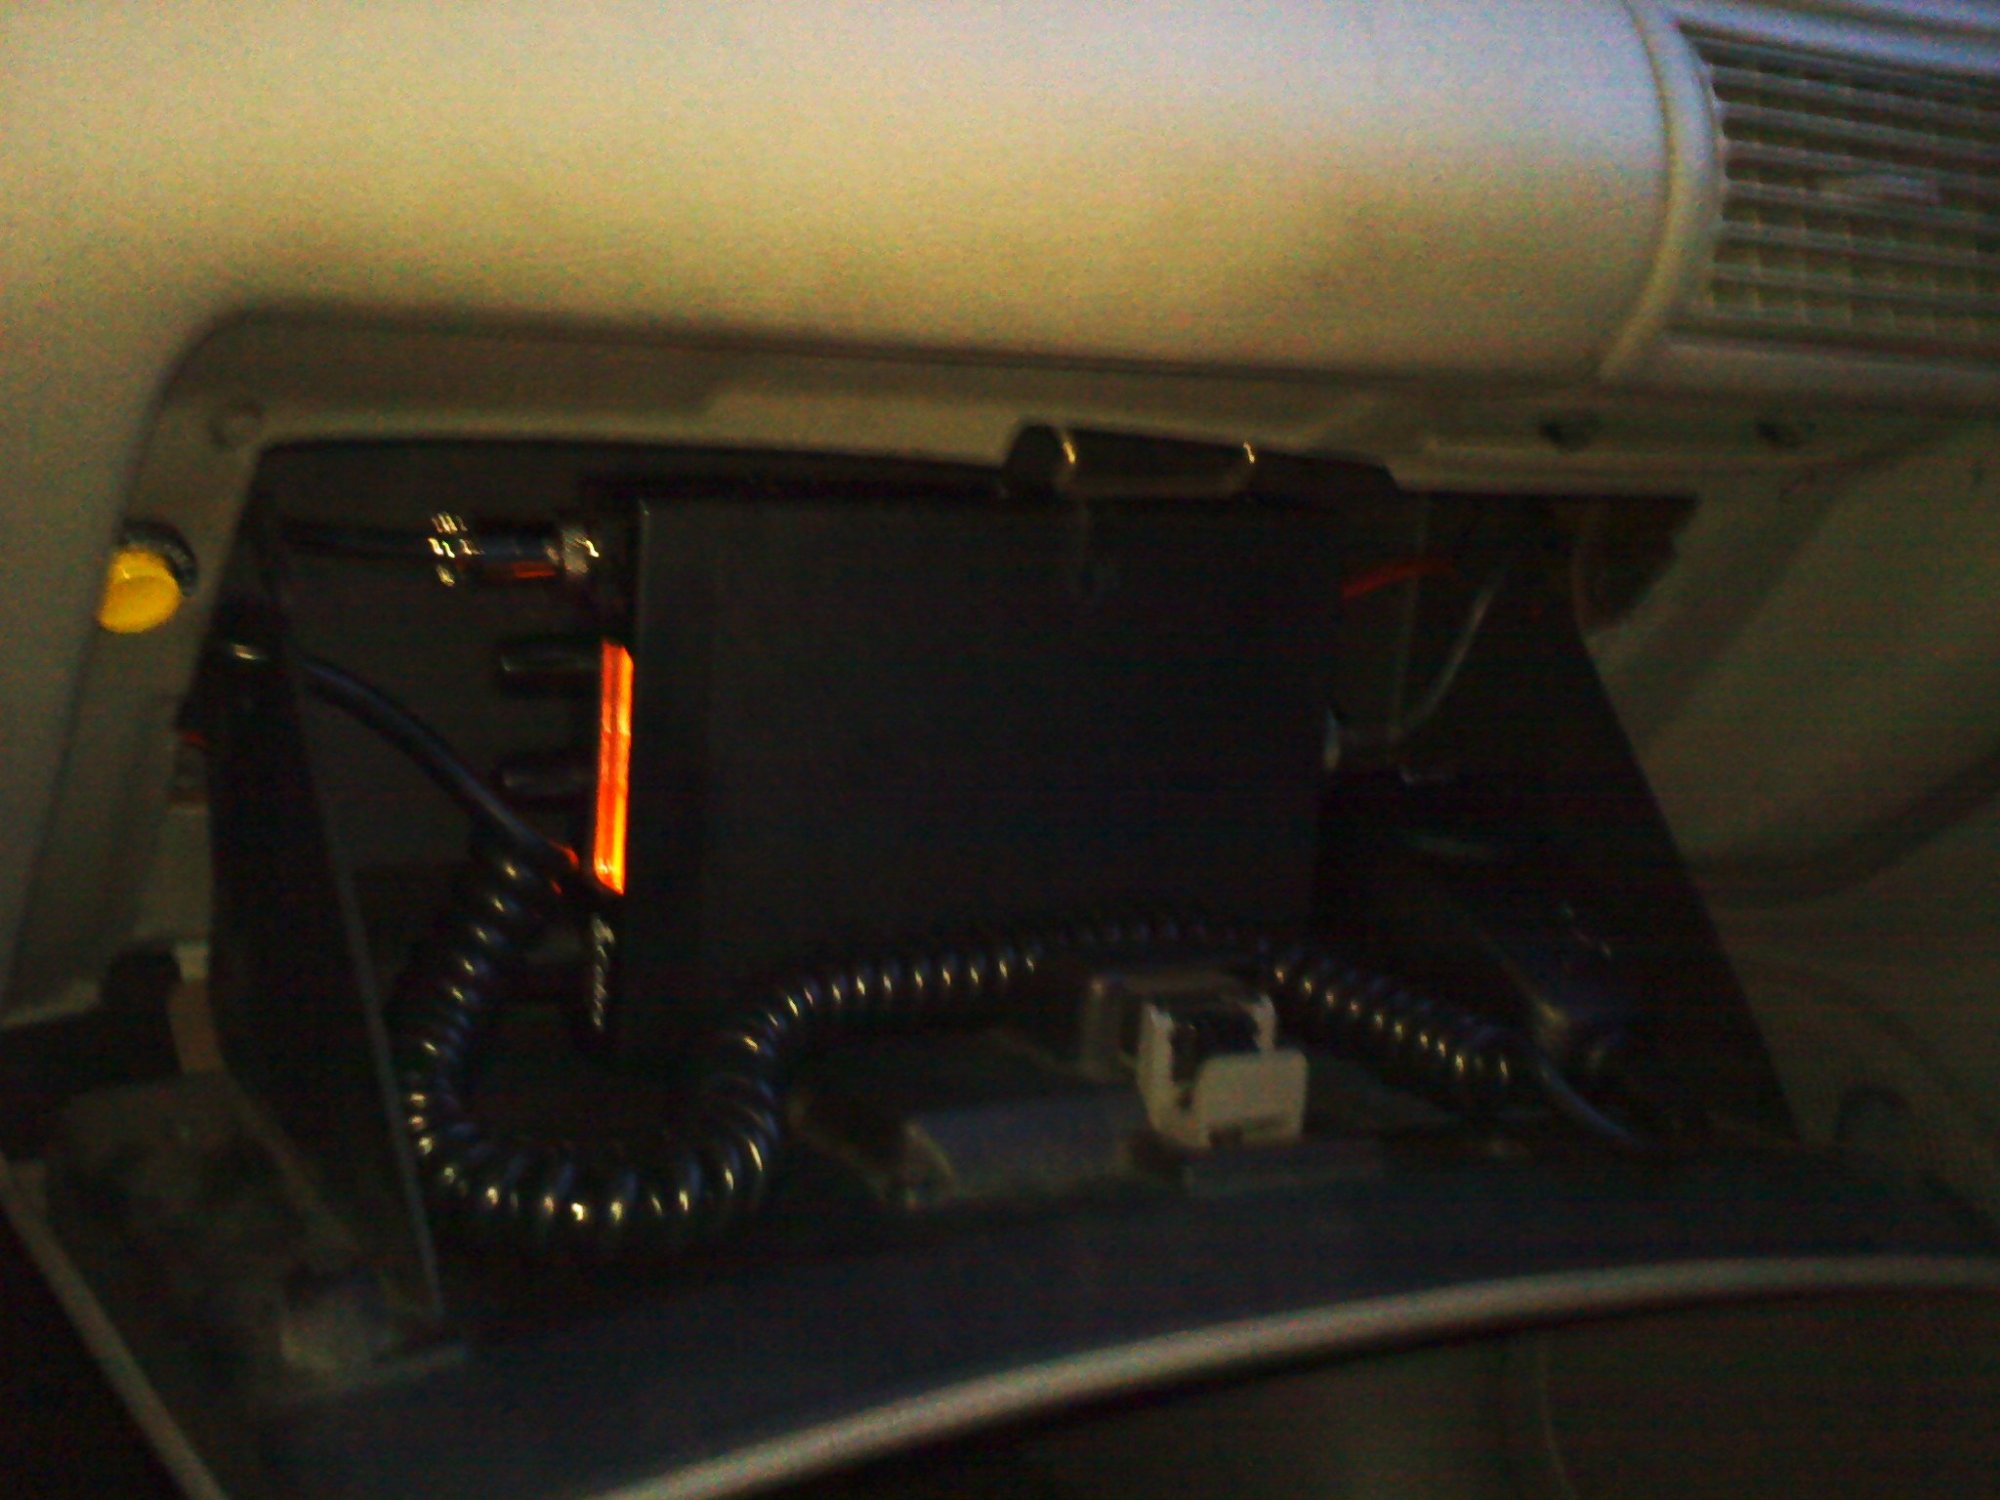 hight resolution of 2000 mustang cb radio fuse box touble ford mustang forum 2000 mustang fuse box under dash